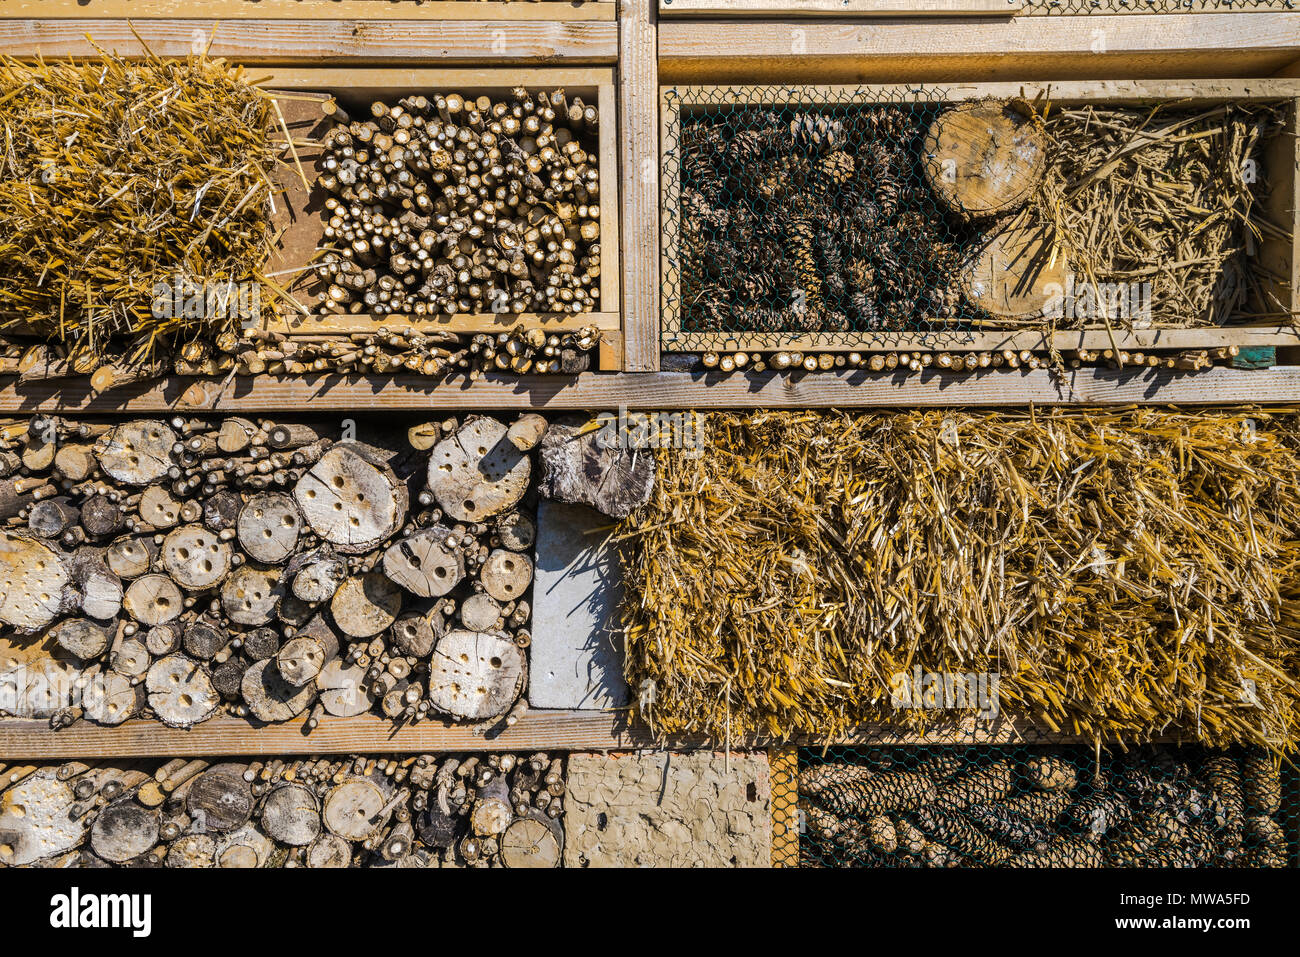 insect hotel, also for bees, construction of different natural materials, nature conservation, environmental and animal protection - Stock Image